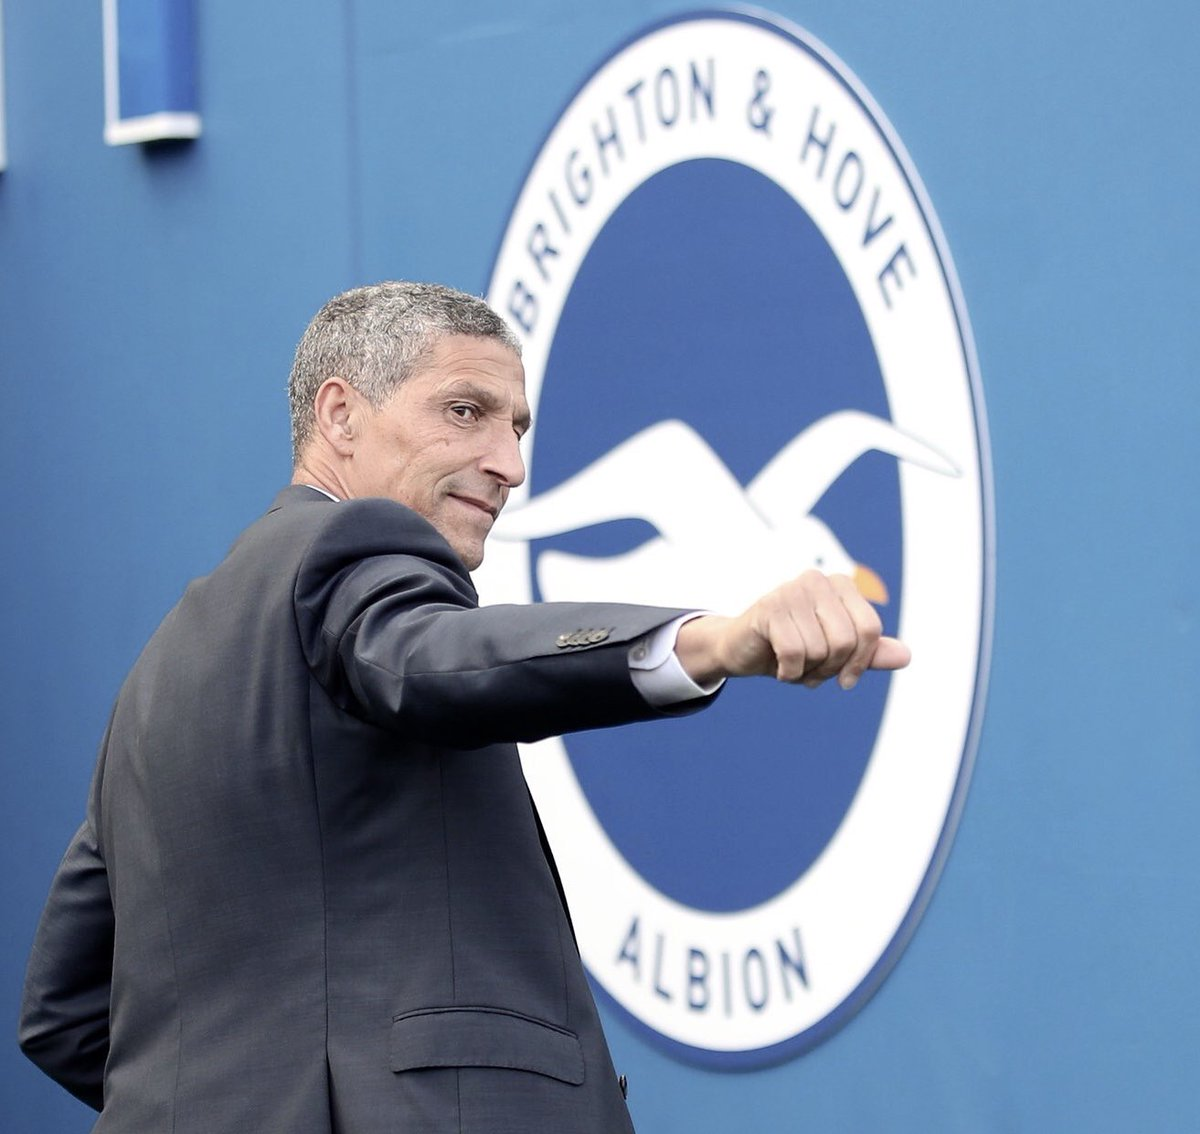 A sad day. Chris Hughton rescued Brighton from a Championship relegation fight & delivered us promotion & survival for 2 seasons in the Premier League, and an FA Cup semi final. His achievements will never be forgotten. A great manager, and an outstanding person 🙏🏽 #bhafc